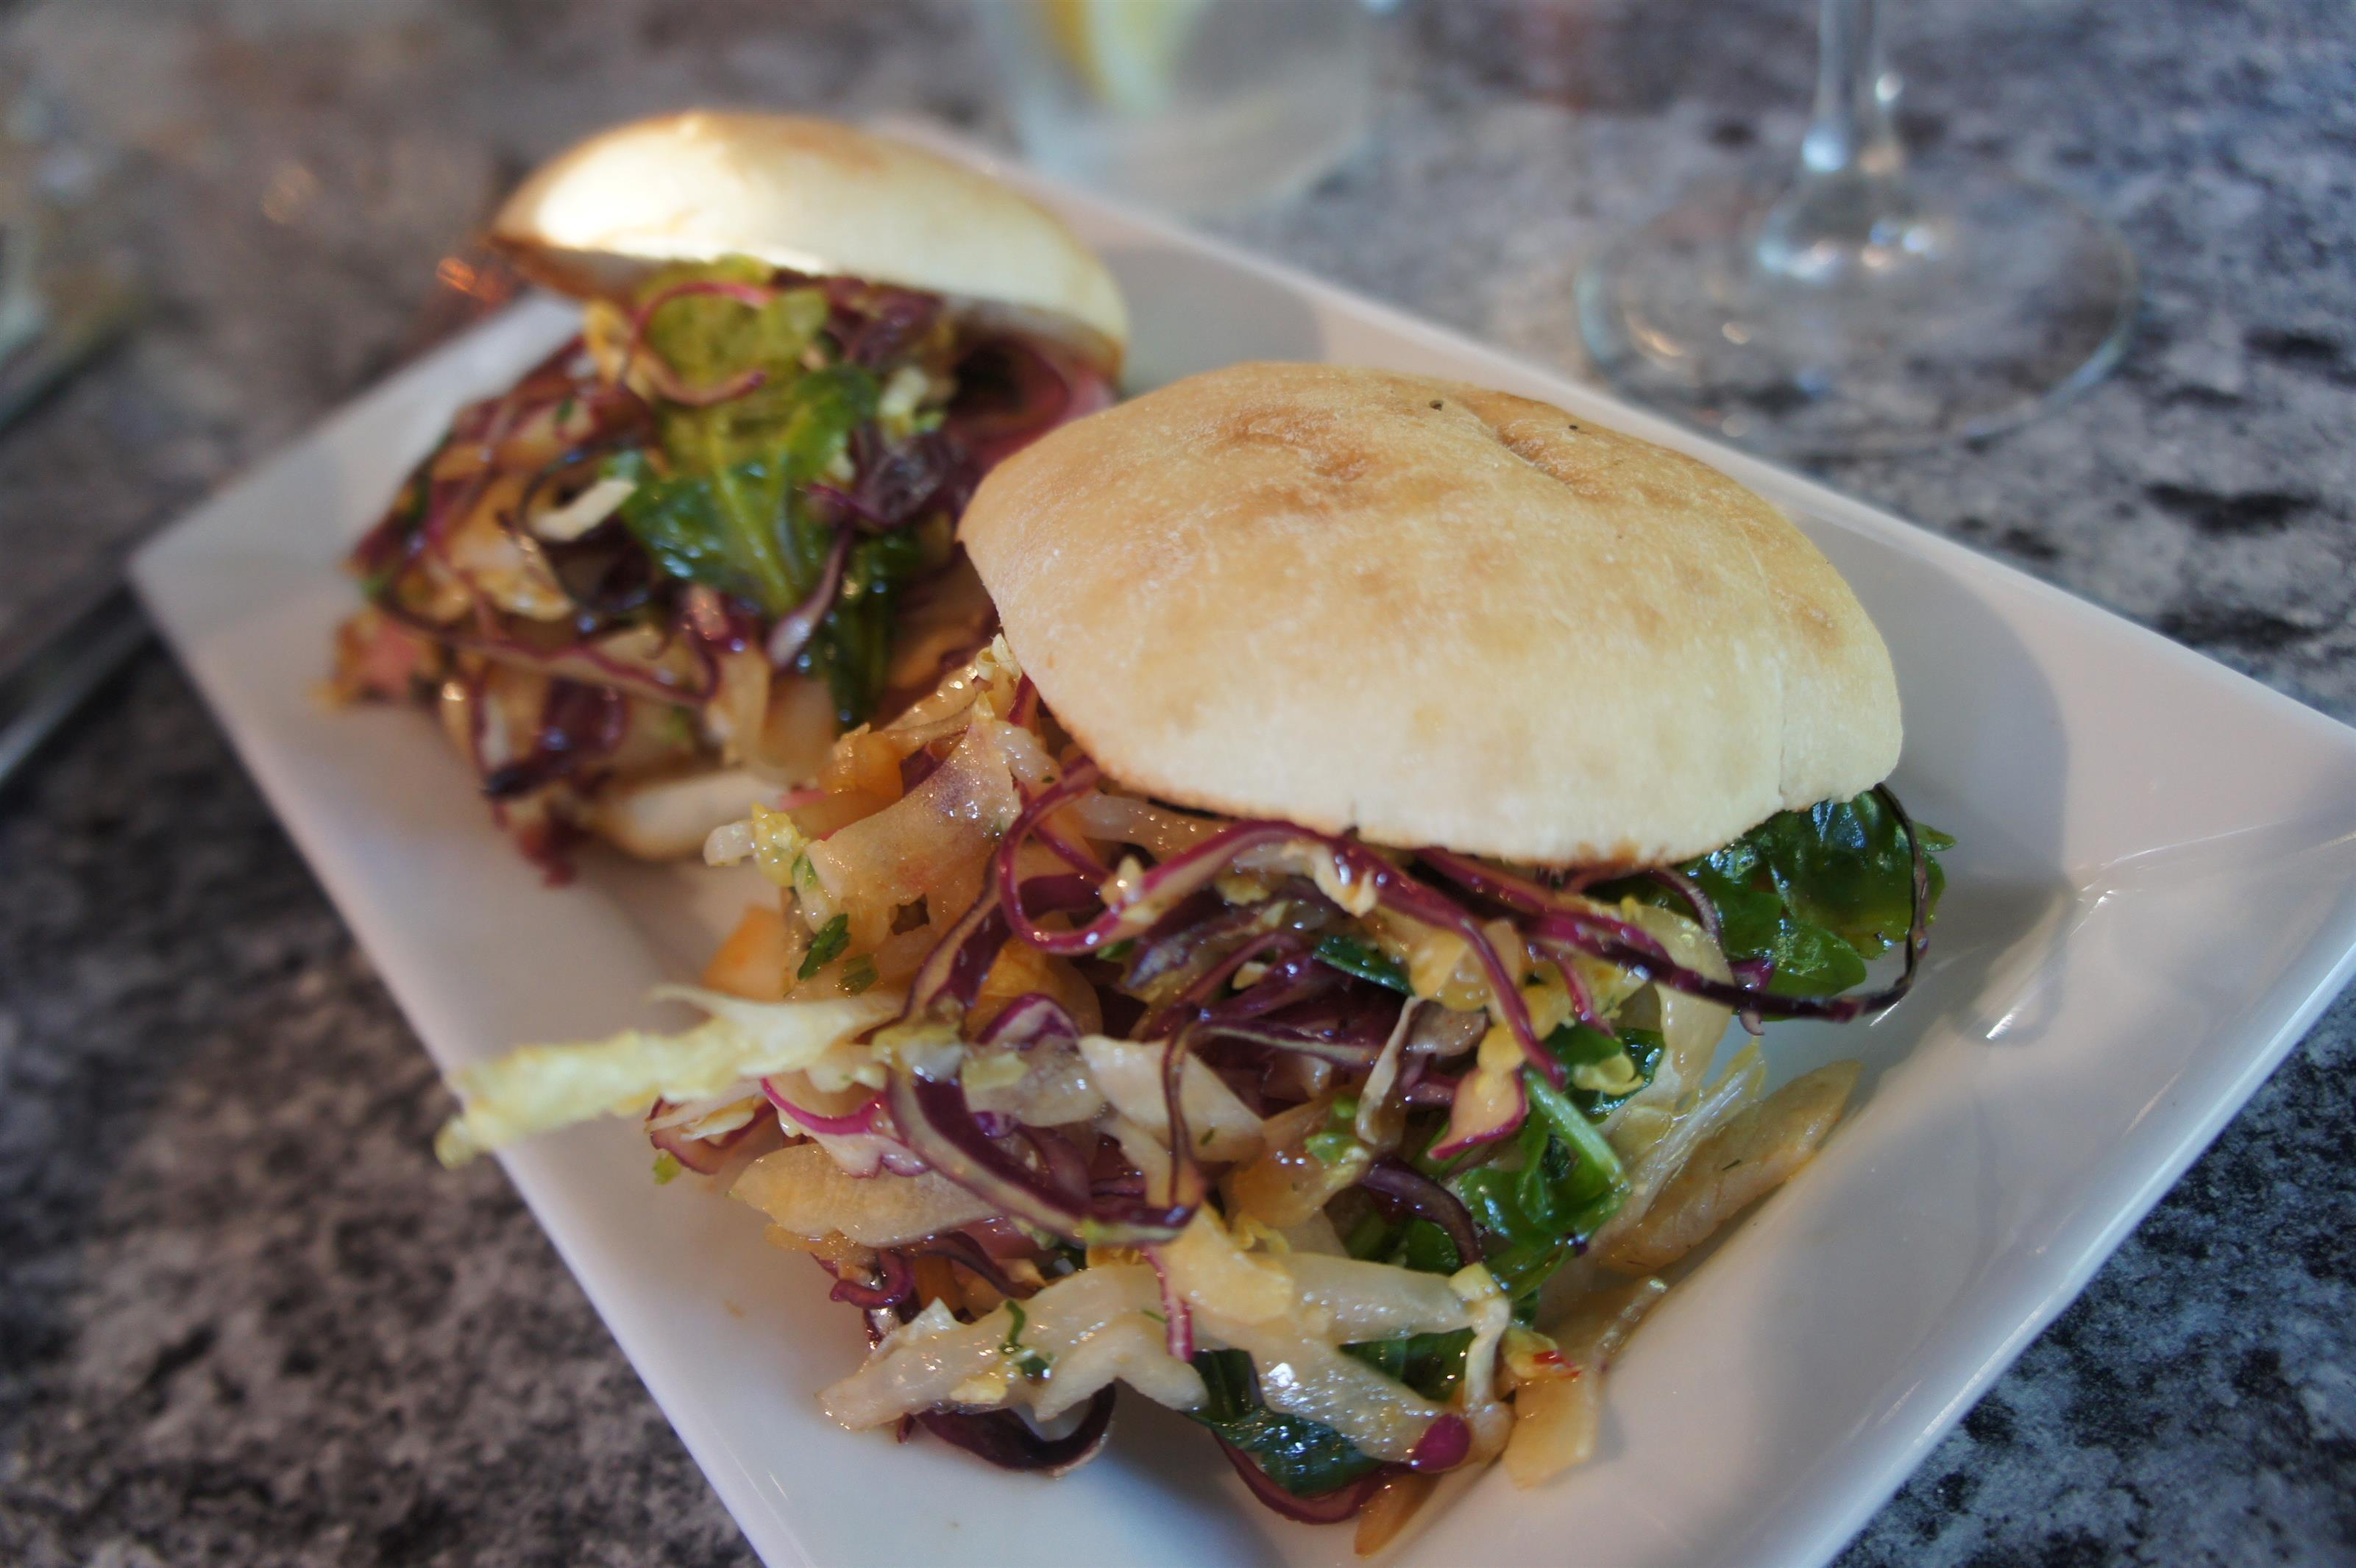 Two slider buns with mixed sauteed vegetables served in a white plate